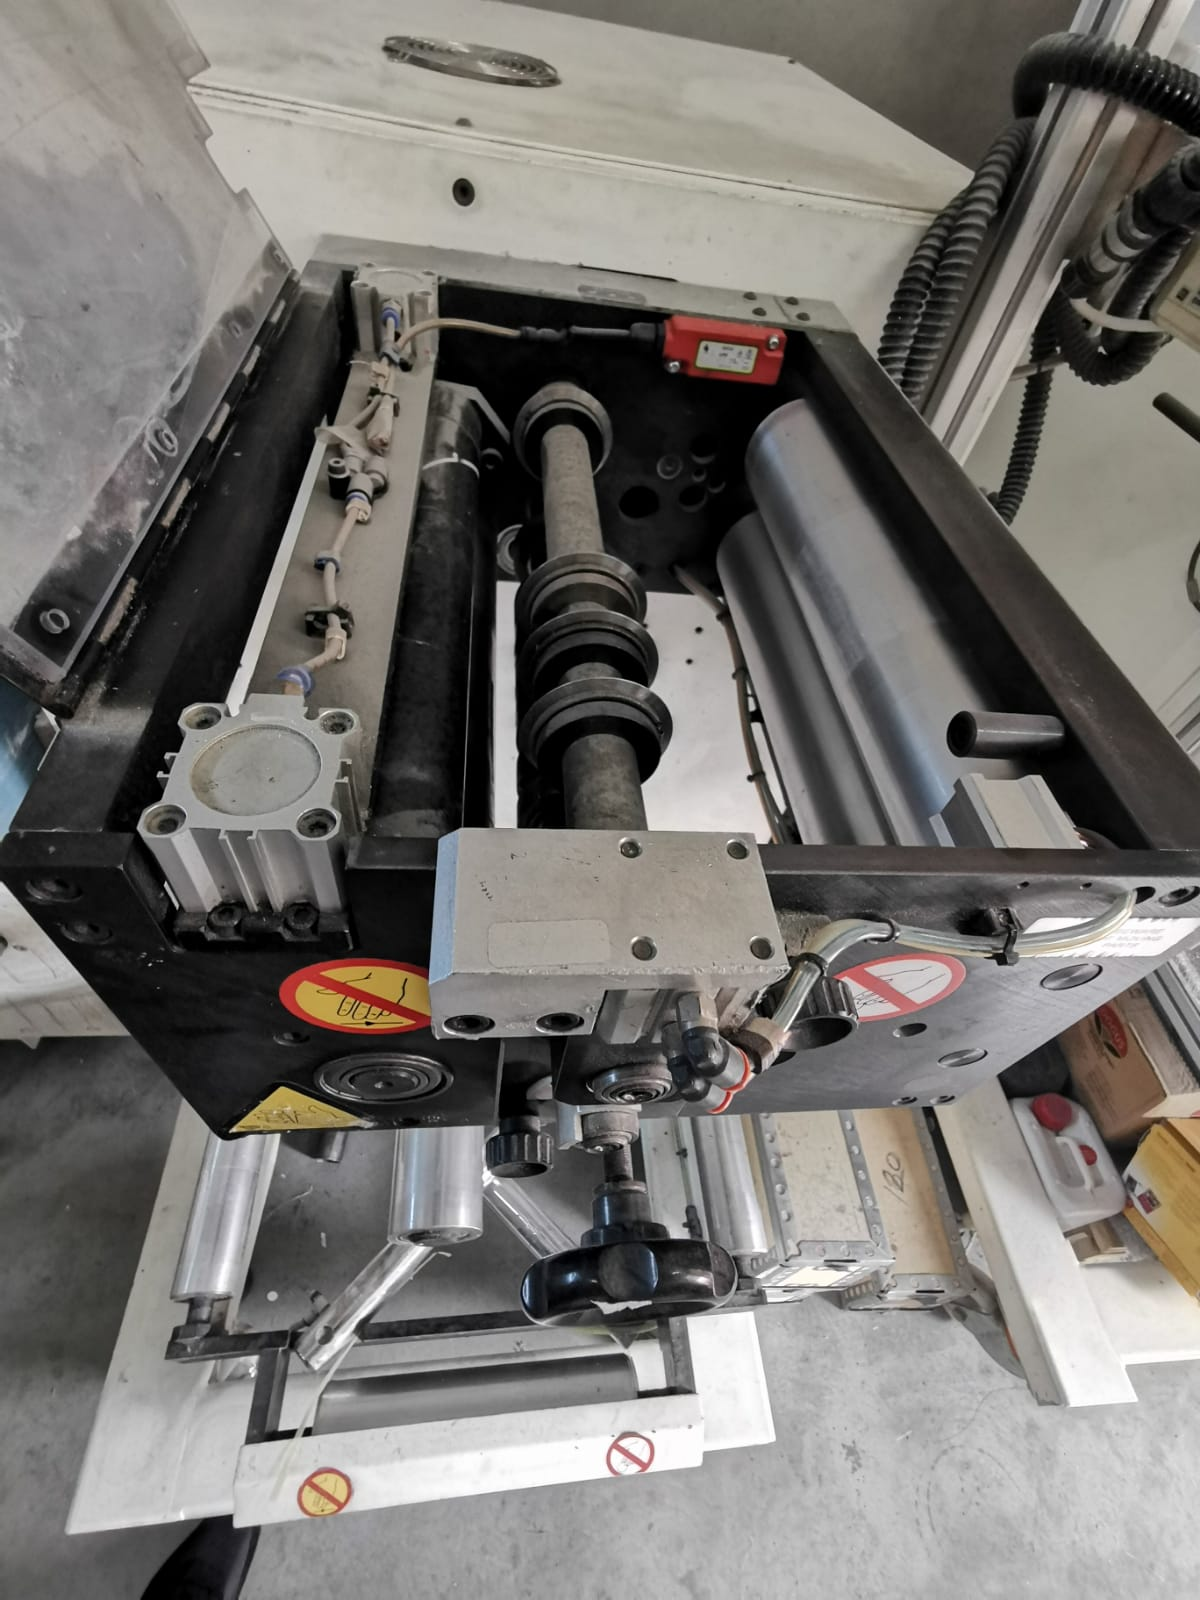 ABG Vectra SGTR 330-4 - Used Flexo Printing Presses and Used Flexographic Equipment-13